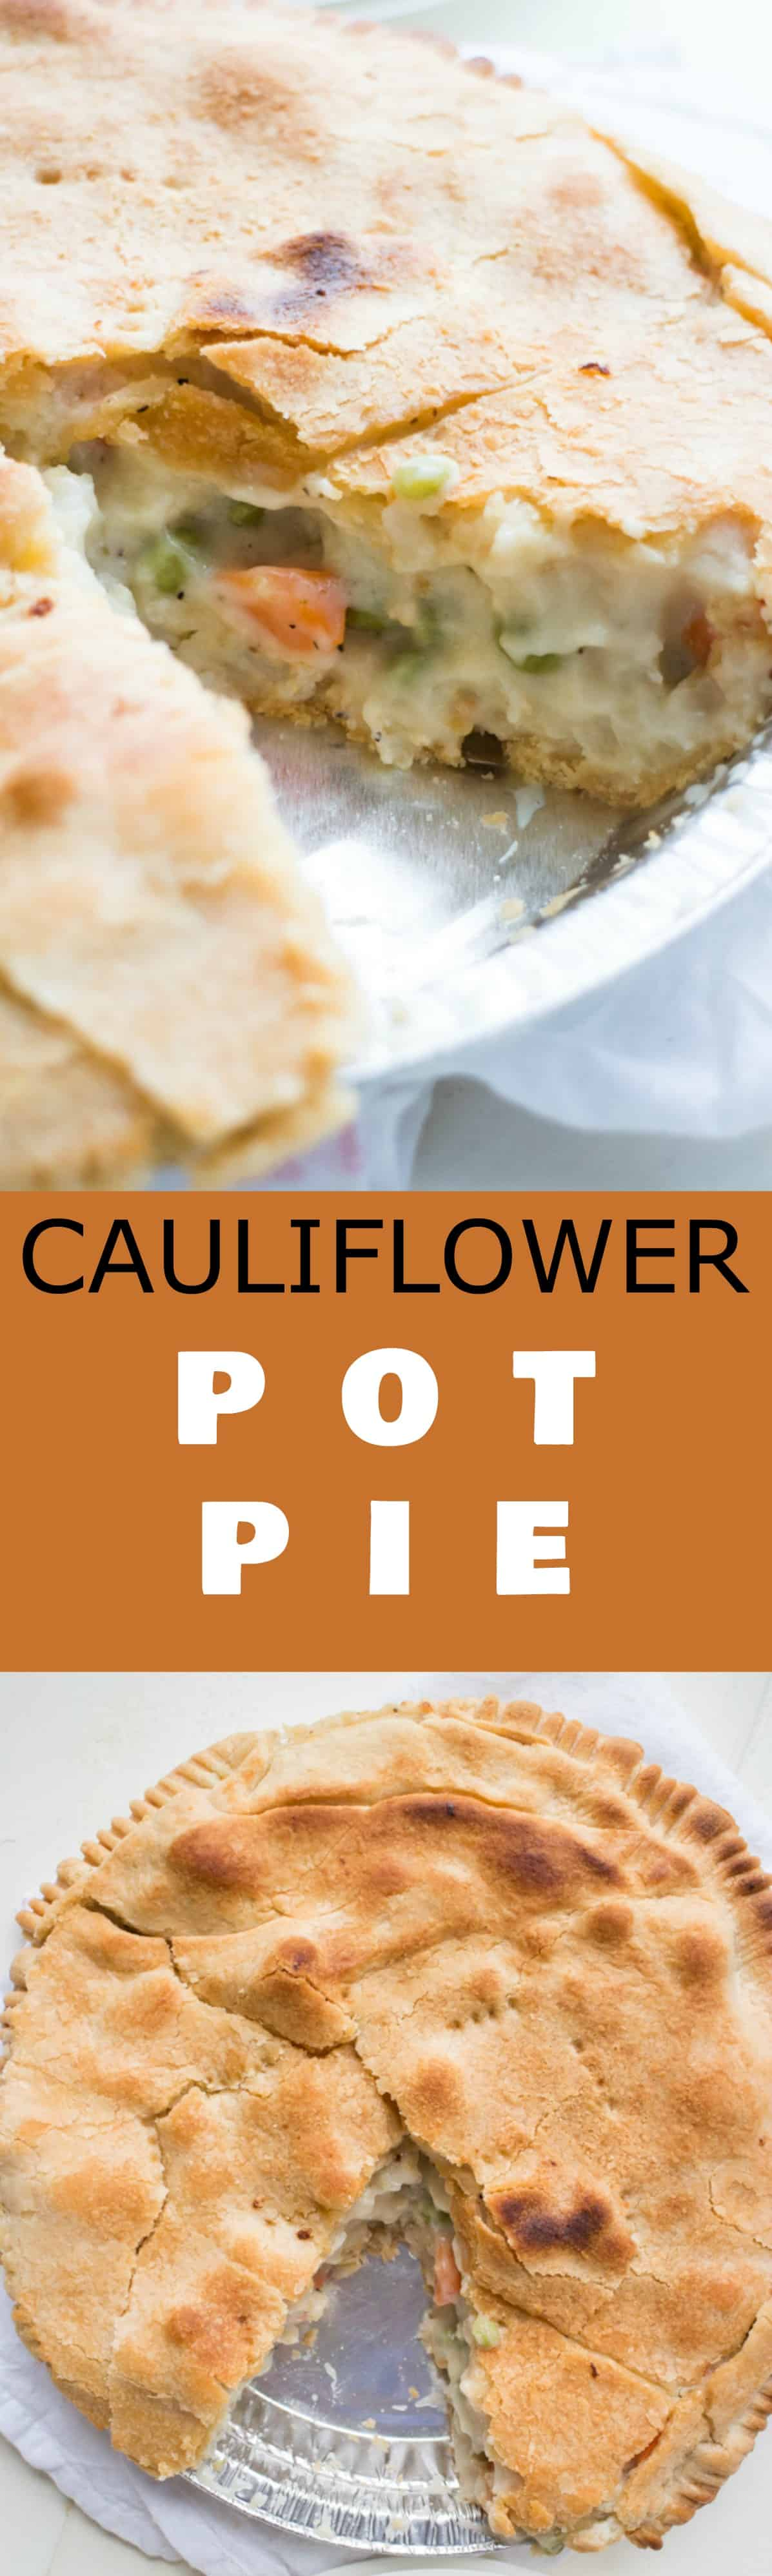 EASY & CREAMY Cauliflower Pot Pie Recipe! This easy Vegetarian Pot Pie uses frozen pie crusts to make a delicious dinner! The pot pie is made with cauliflower, carrots and peas filling in a creamy sauce! It's a healthy, vegetable friendly solution to homemade chicken pot pie!